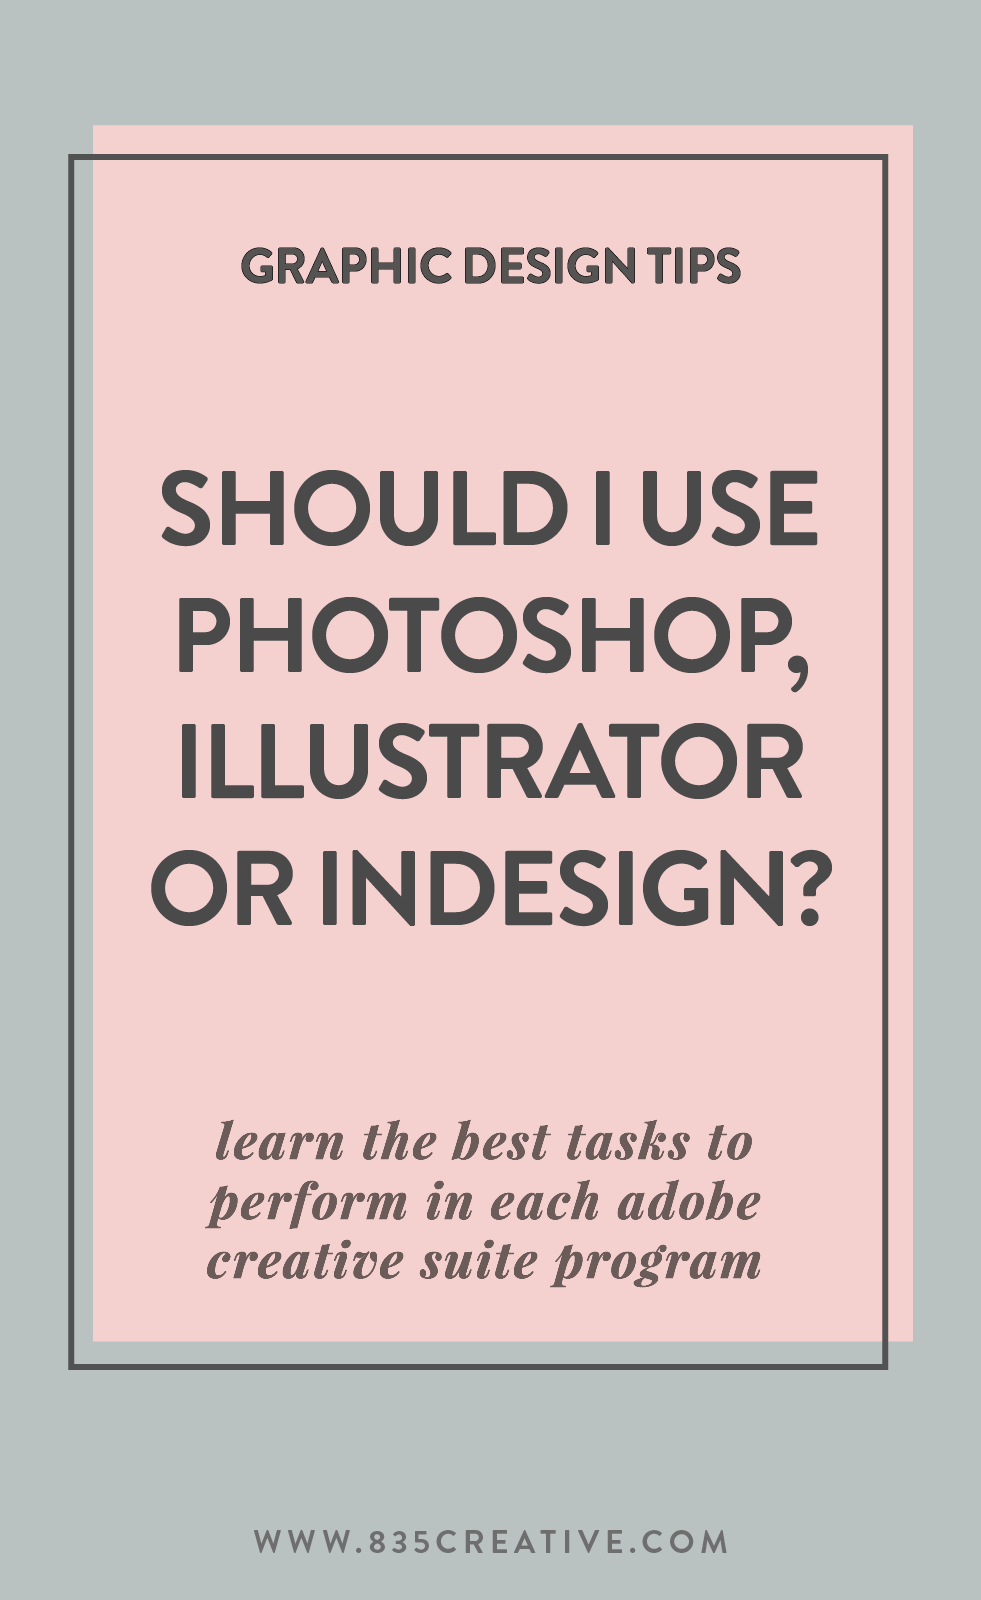 When should I use Photoshop, Illustrator or InDesign? Tips on when to use Adobe Creative Suites for different tasks for graphic designers, bloggers and small business owners.